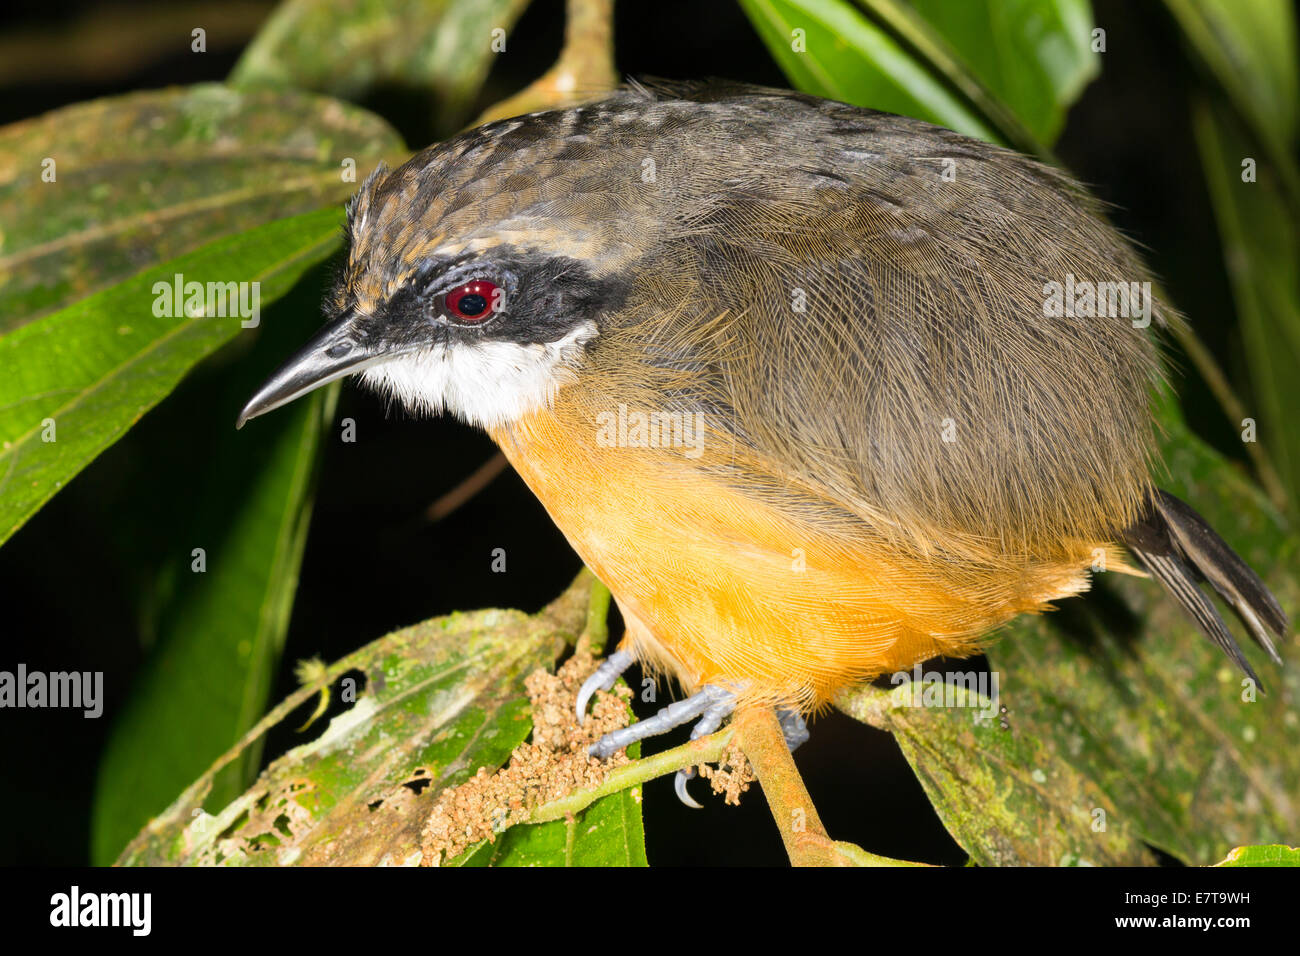 Unidentified bird roosting in the rainforest understory at night, Ecuador. Stock Photo